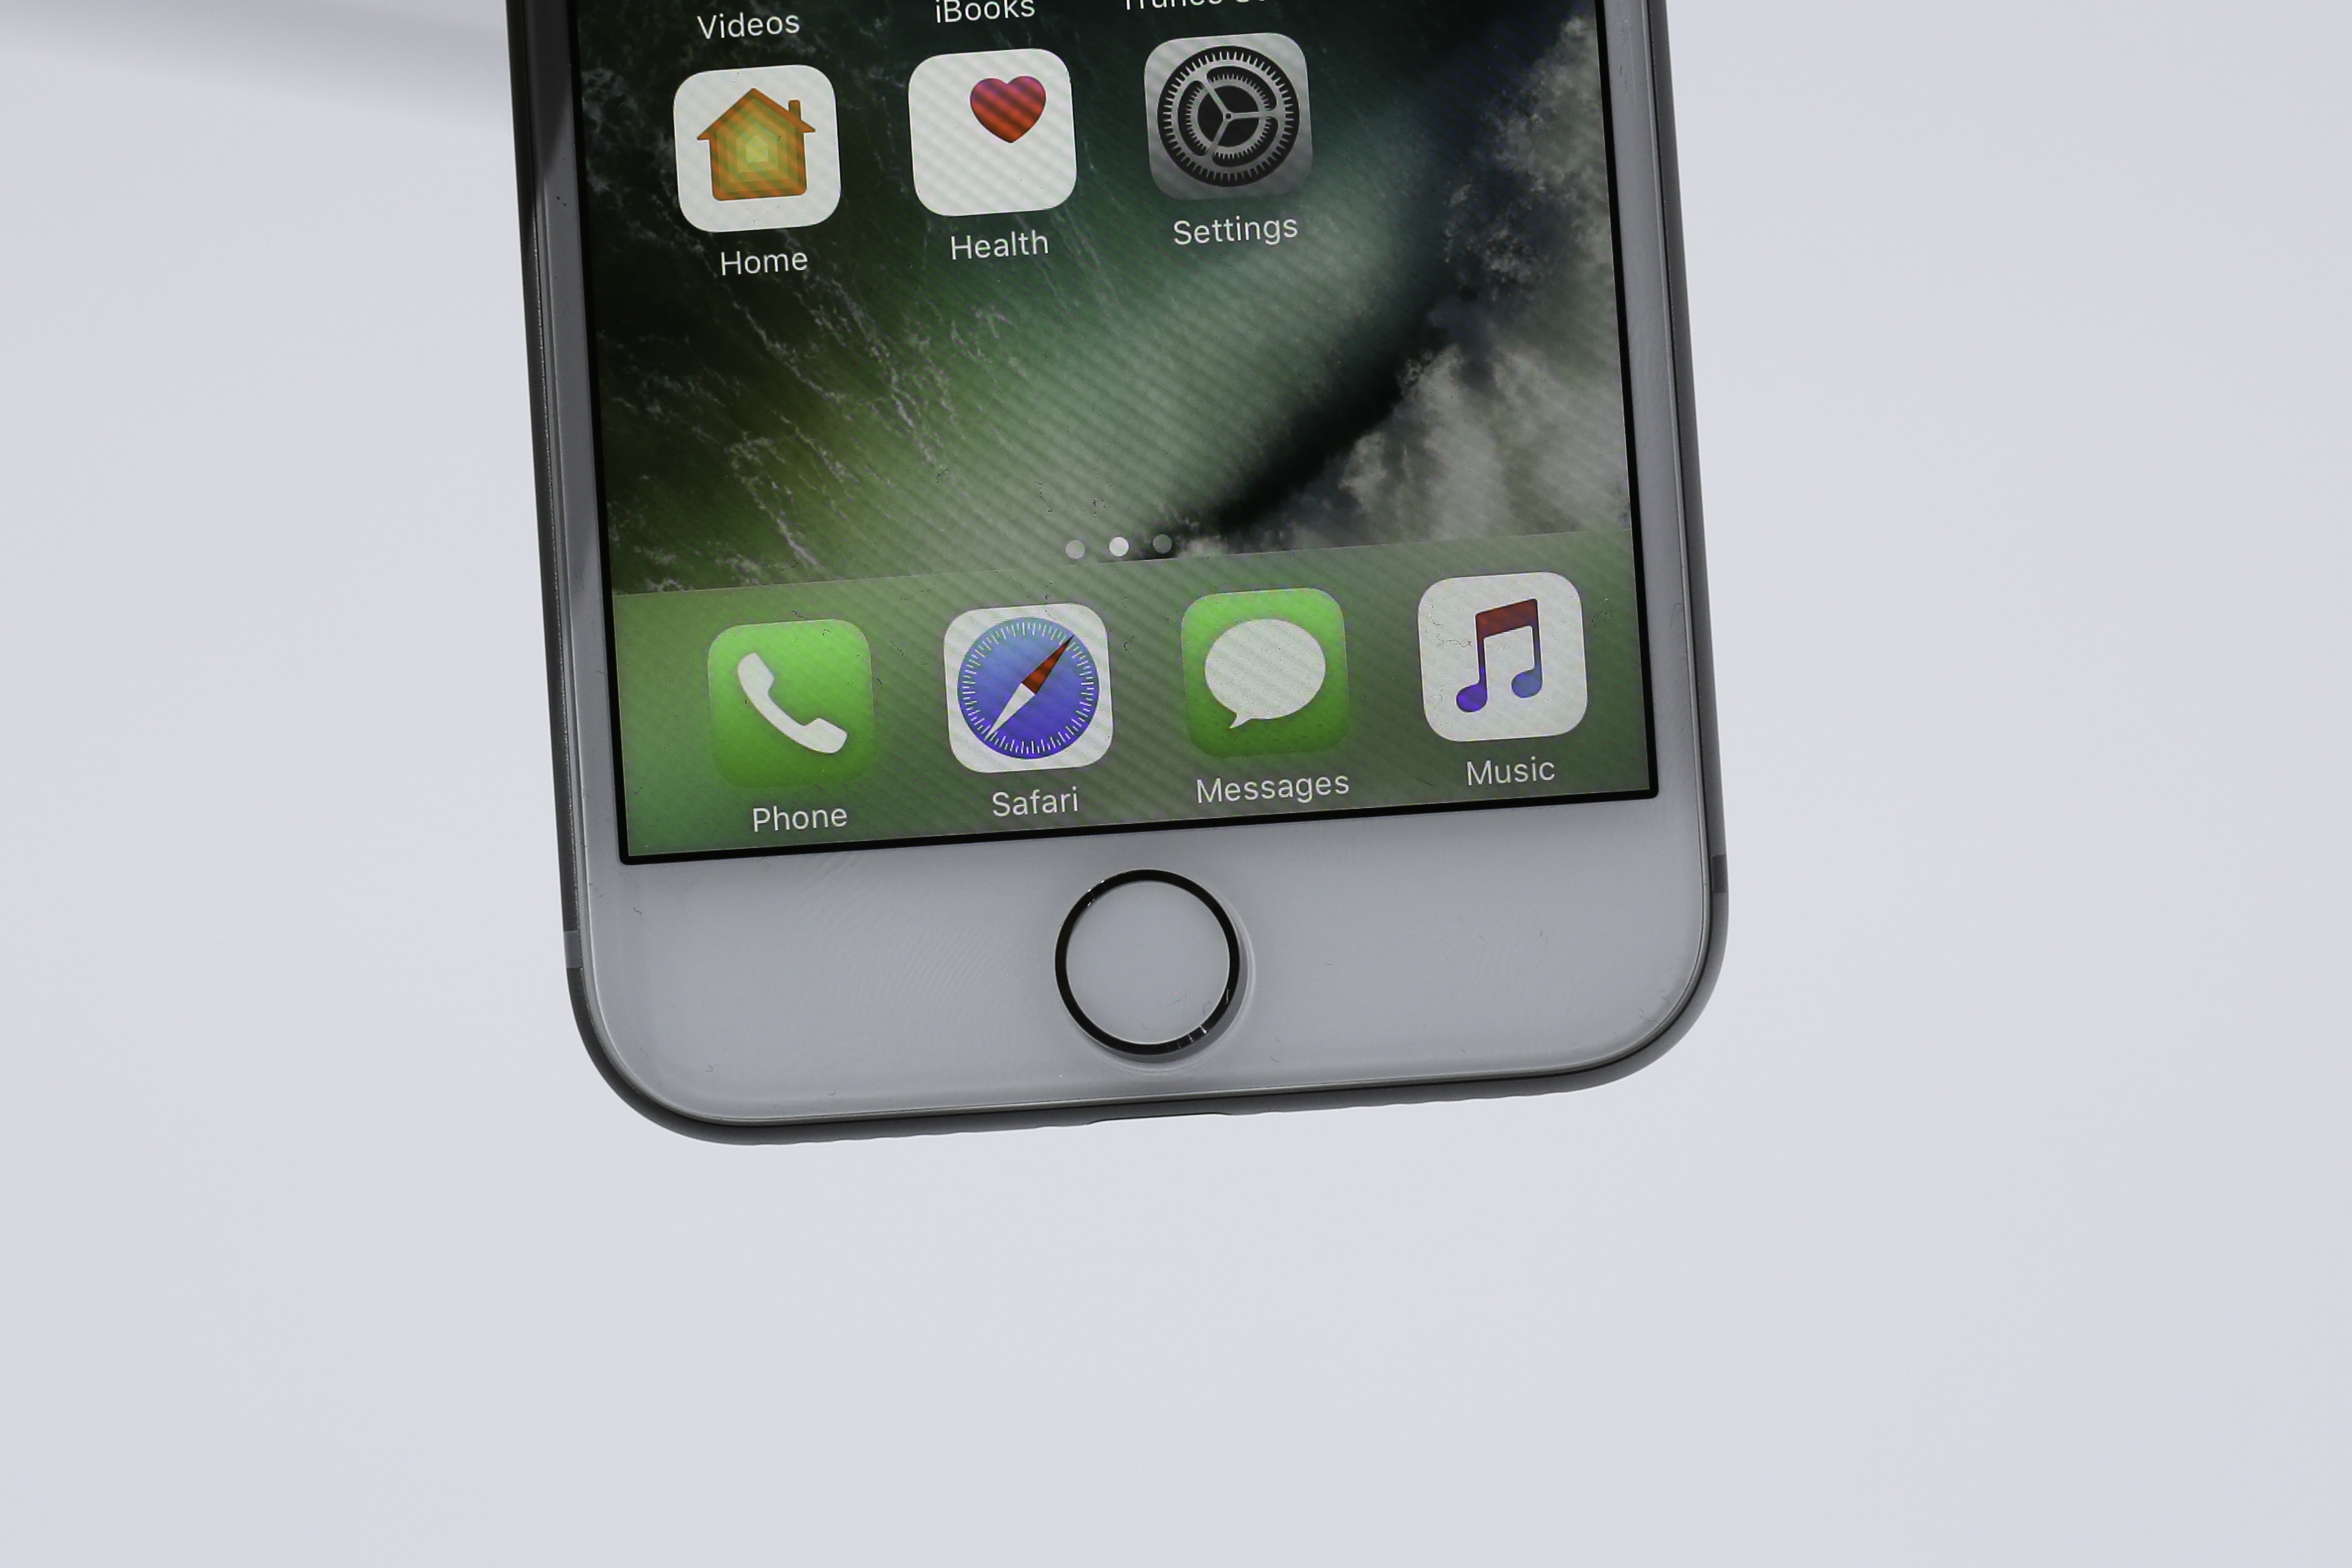 Taptic Home button